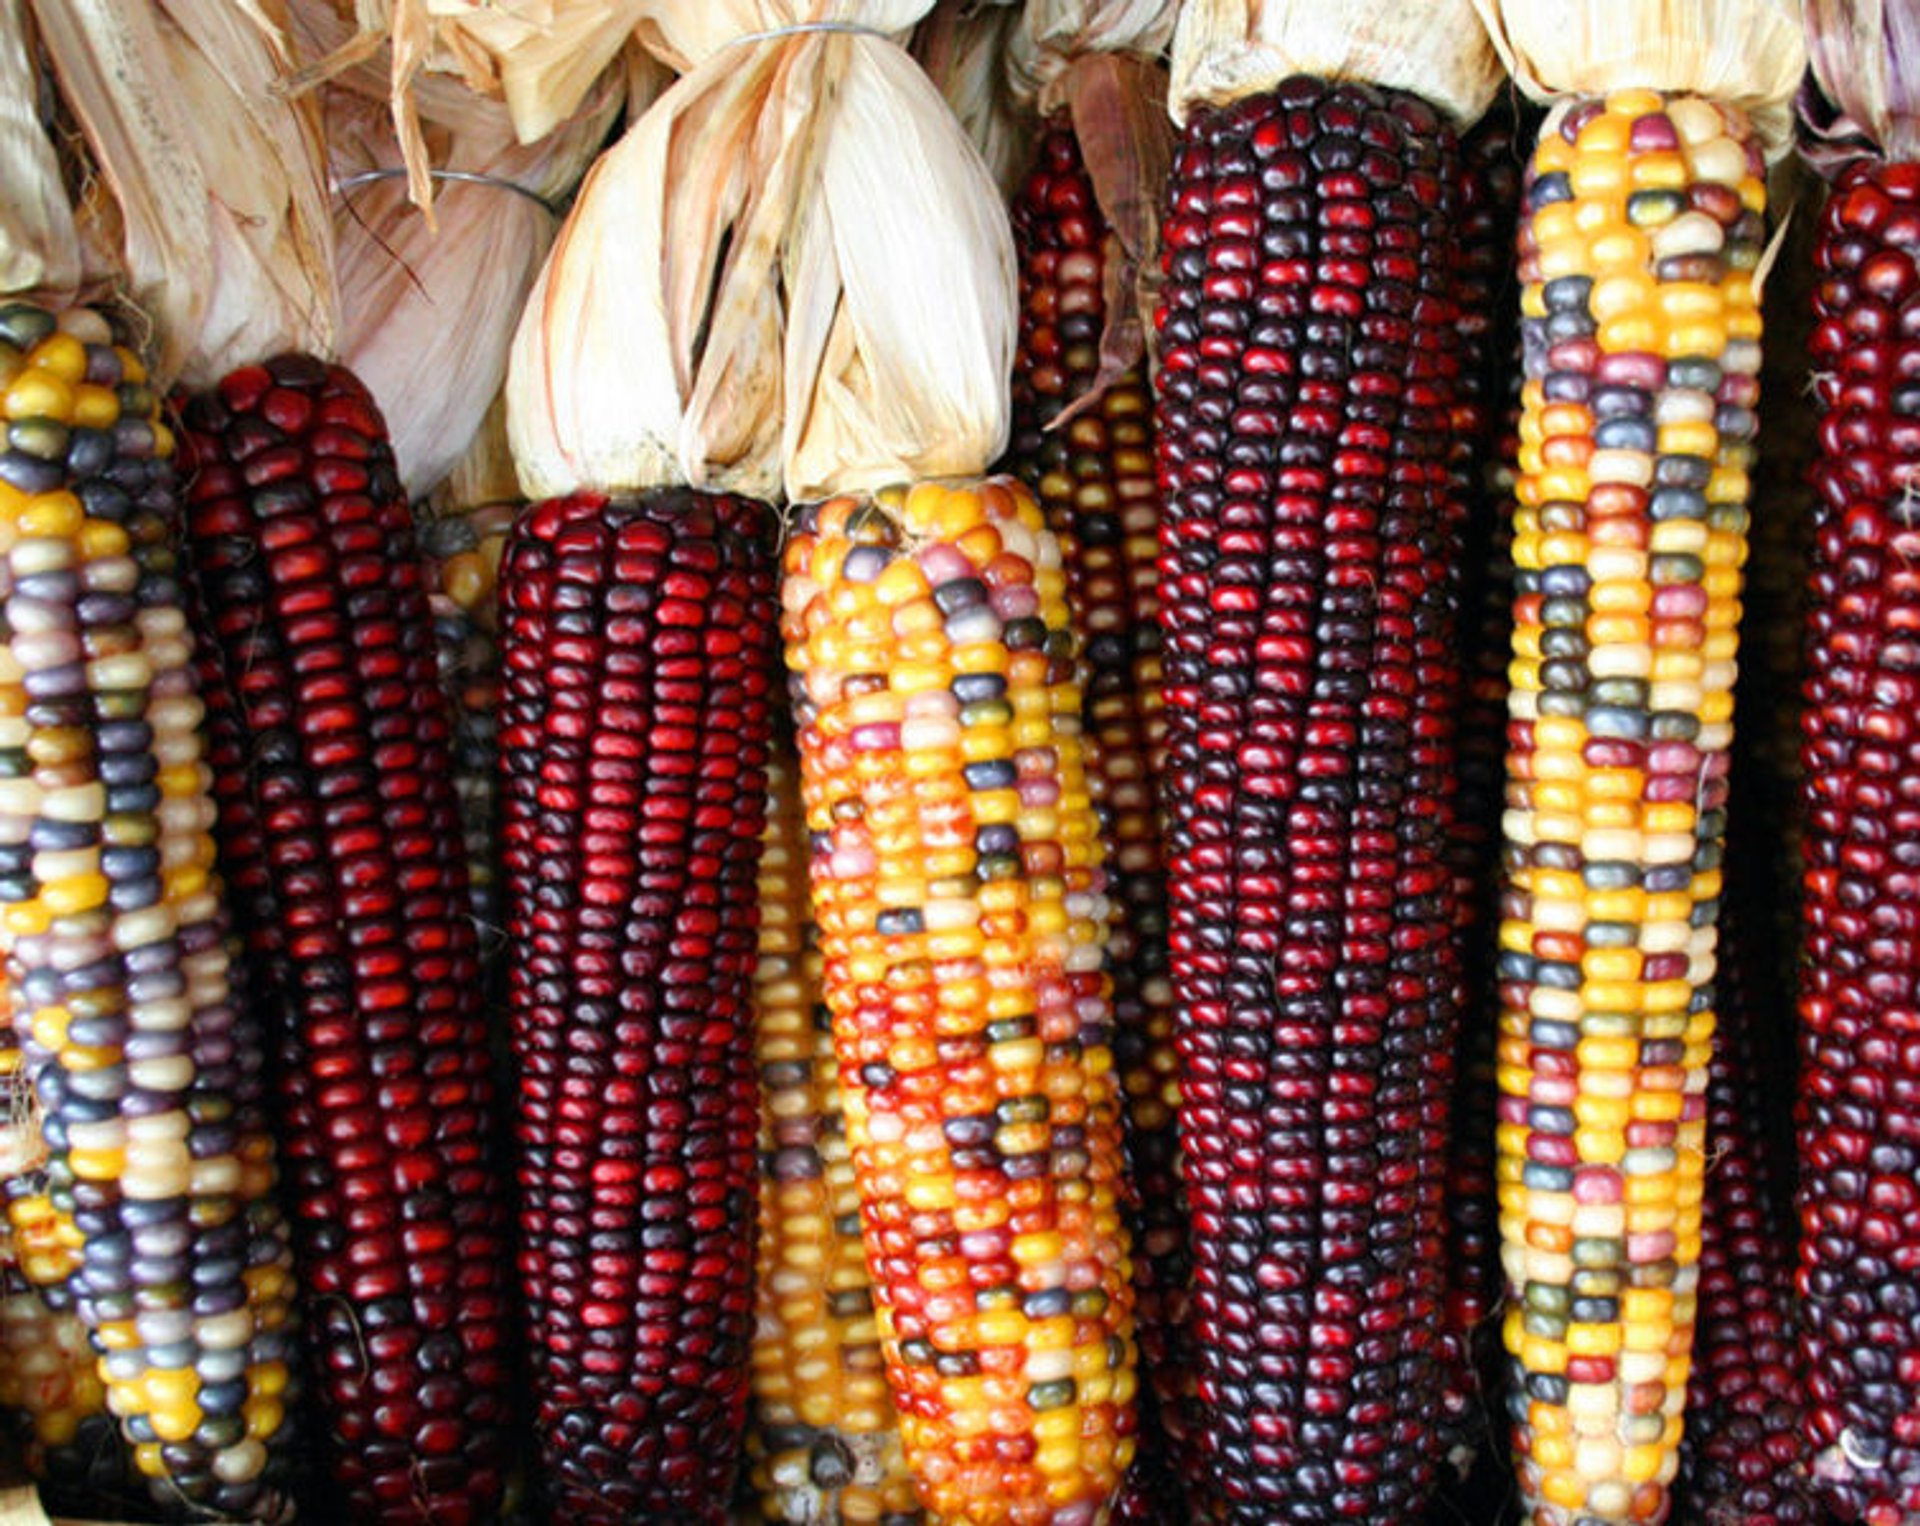 Corn Specialties in Guatemala - Best Time